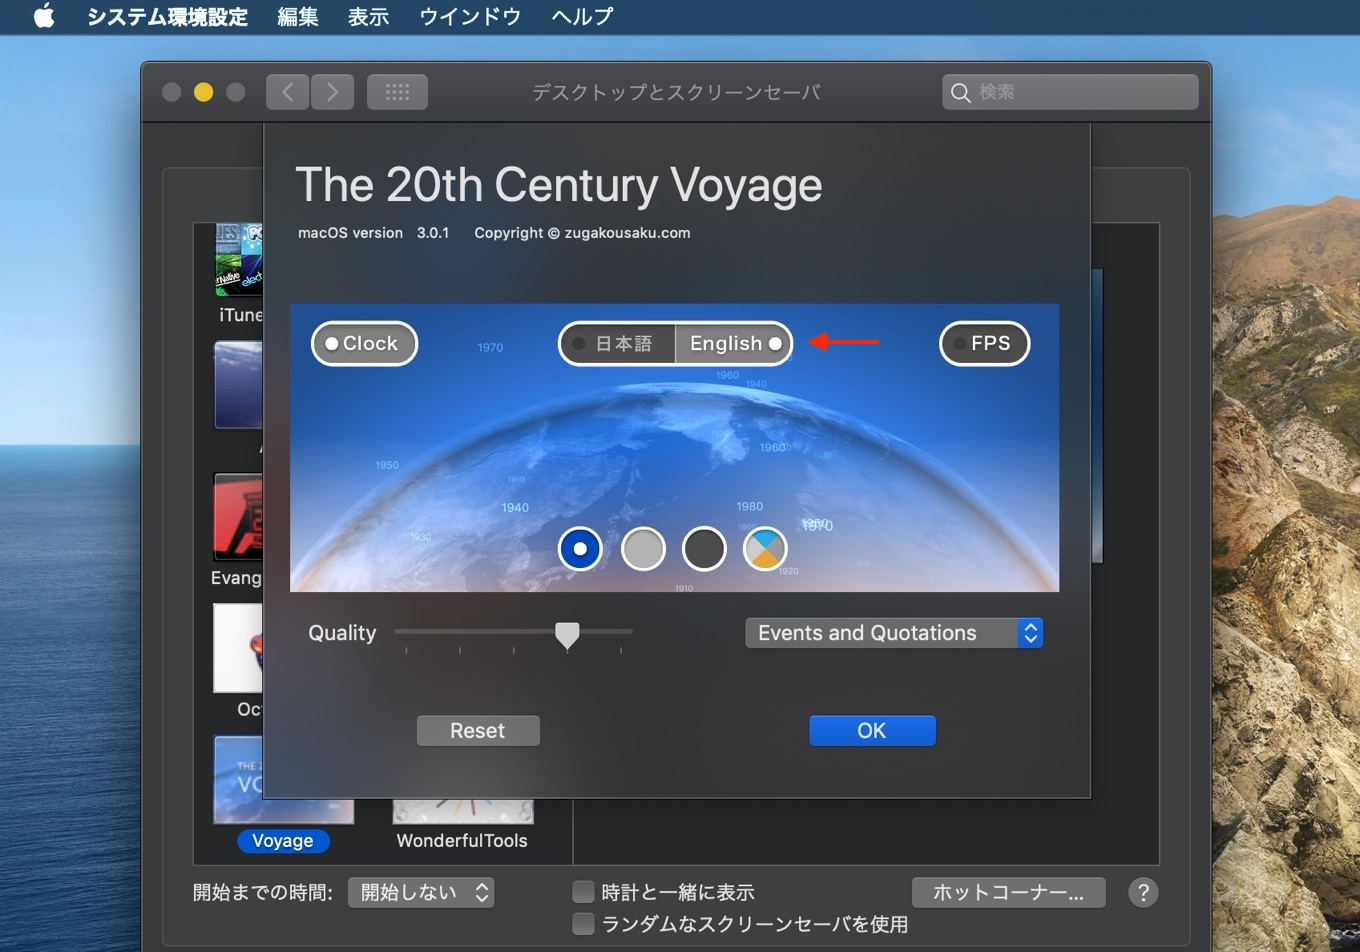 The 20th Century Voyage | Screen Saver for macOS